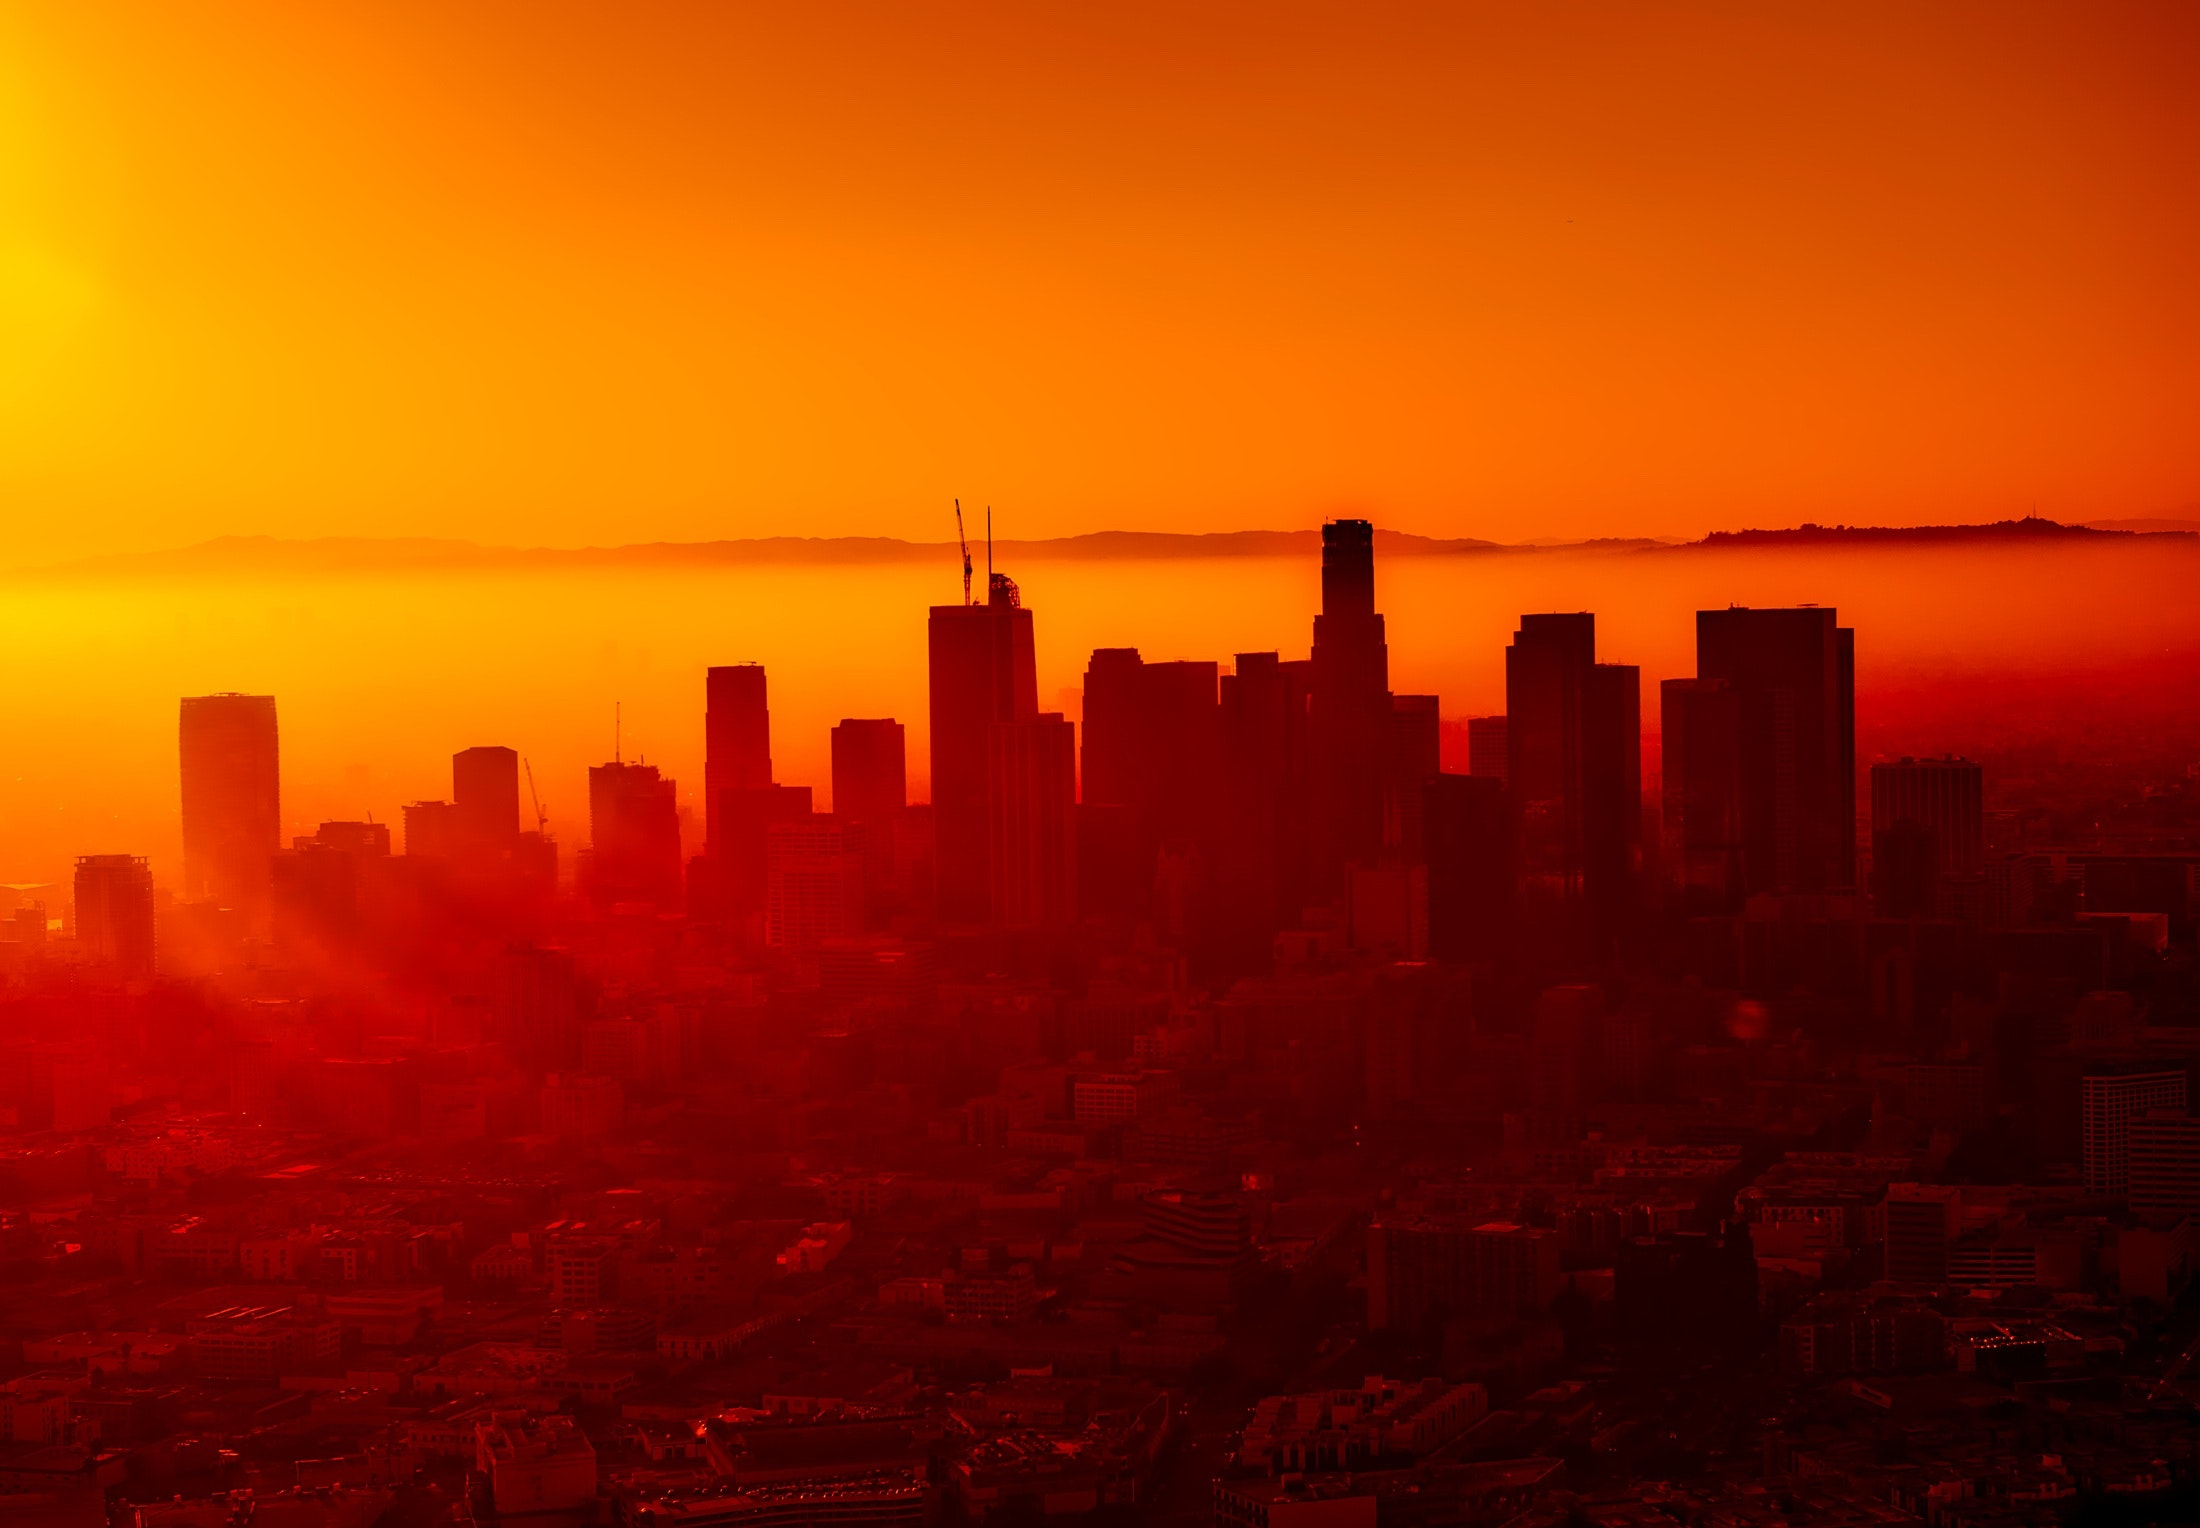 A sunset in Los Angeles